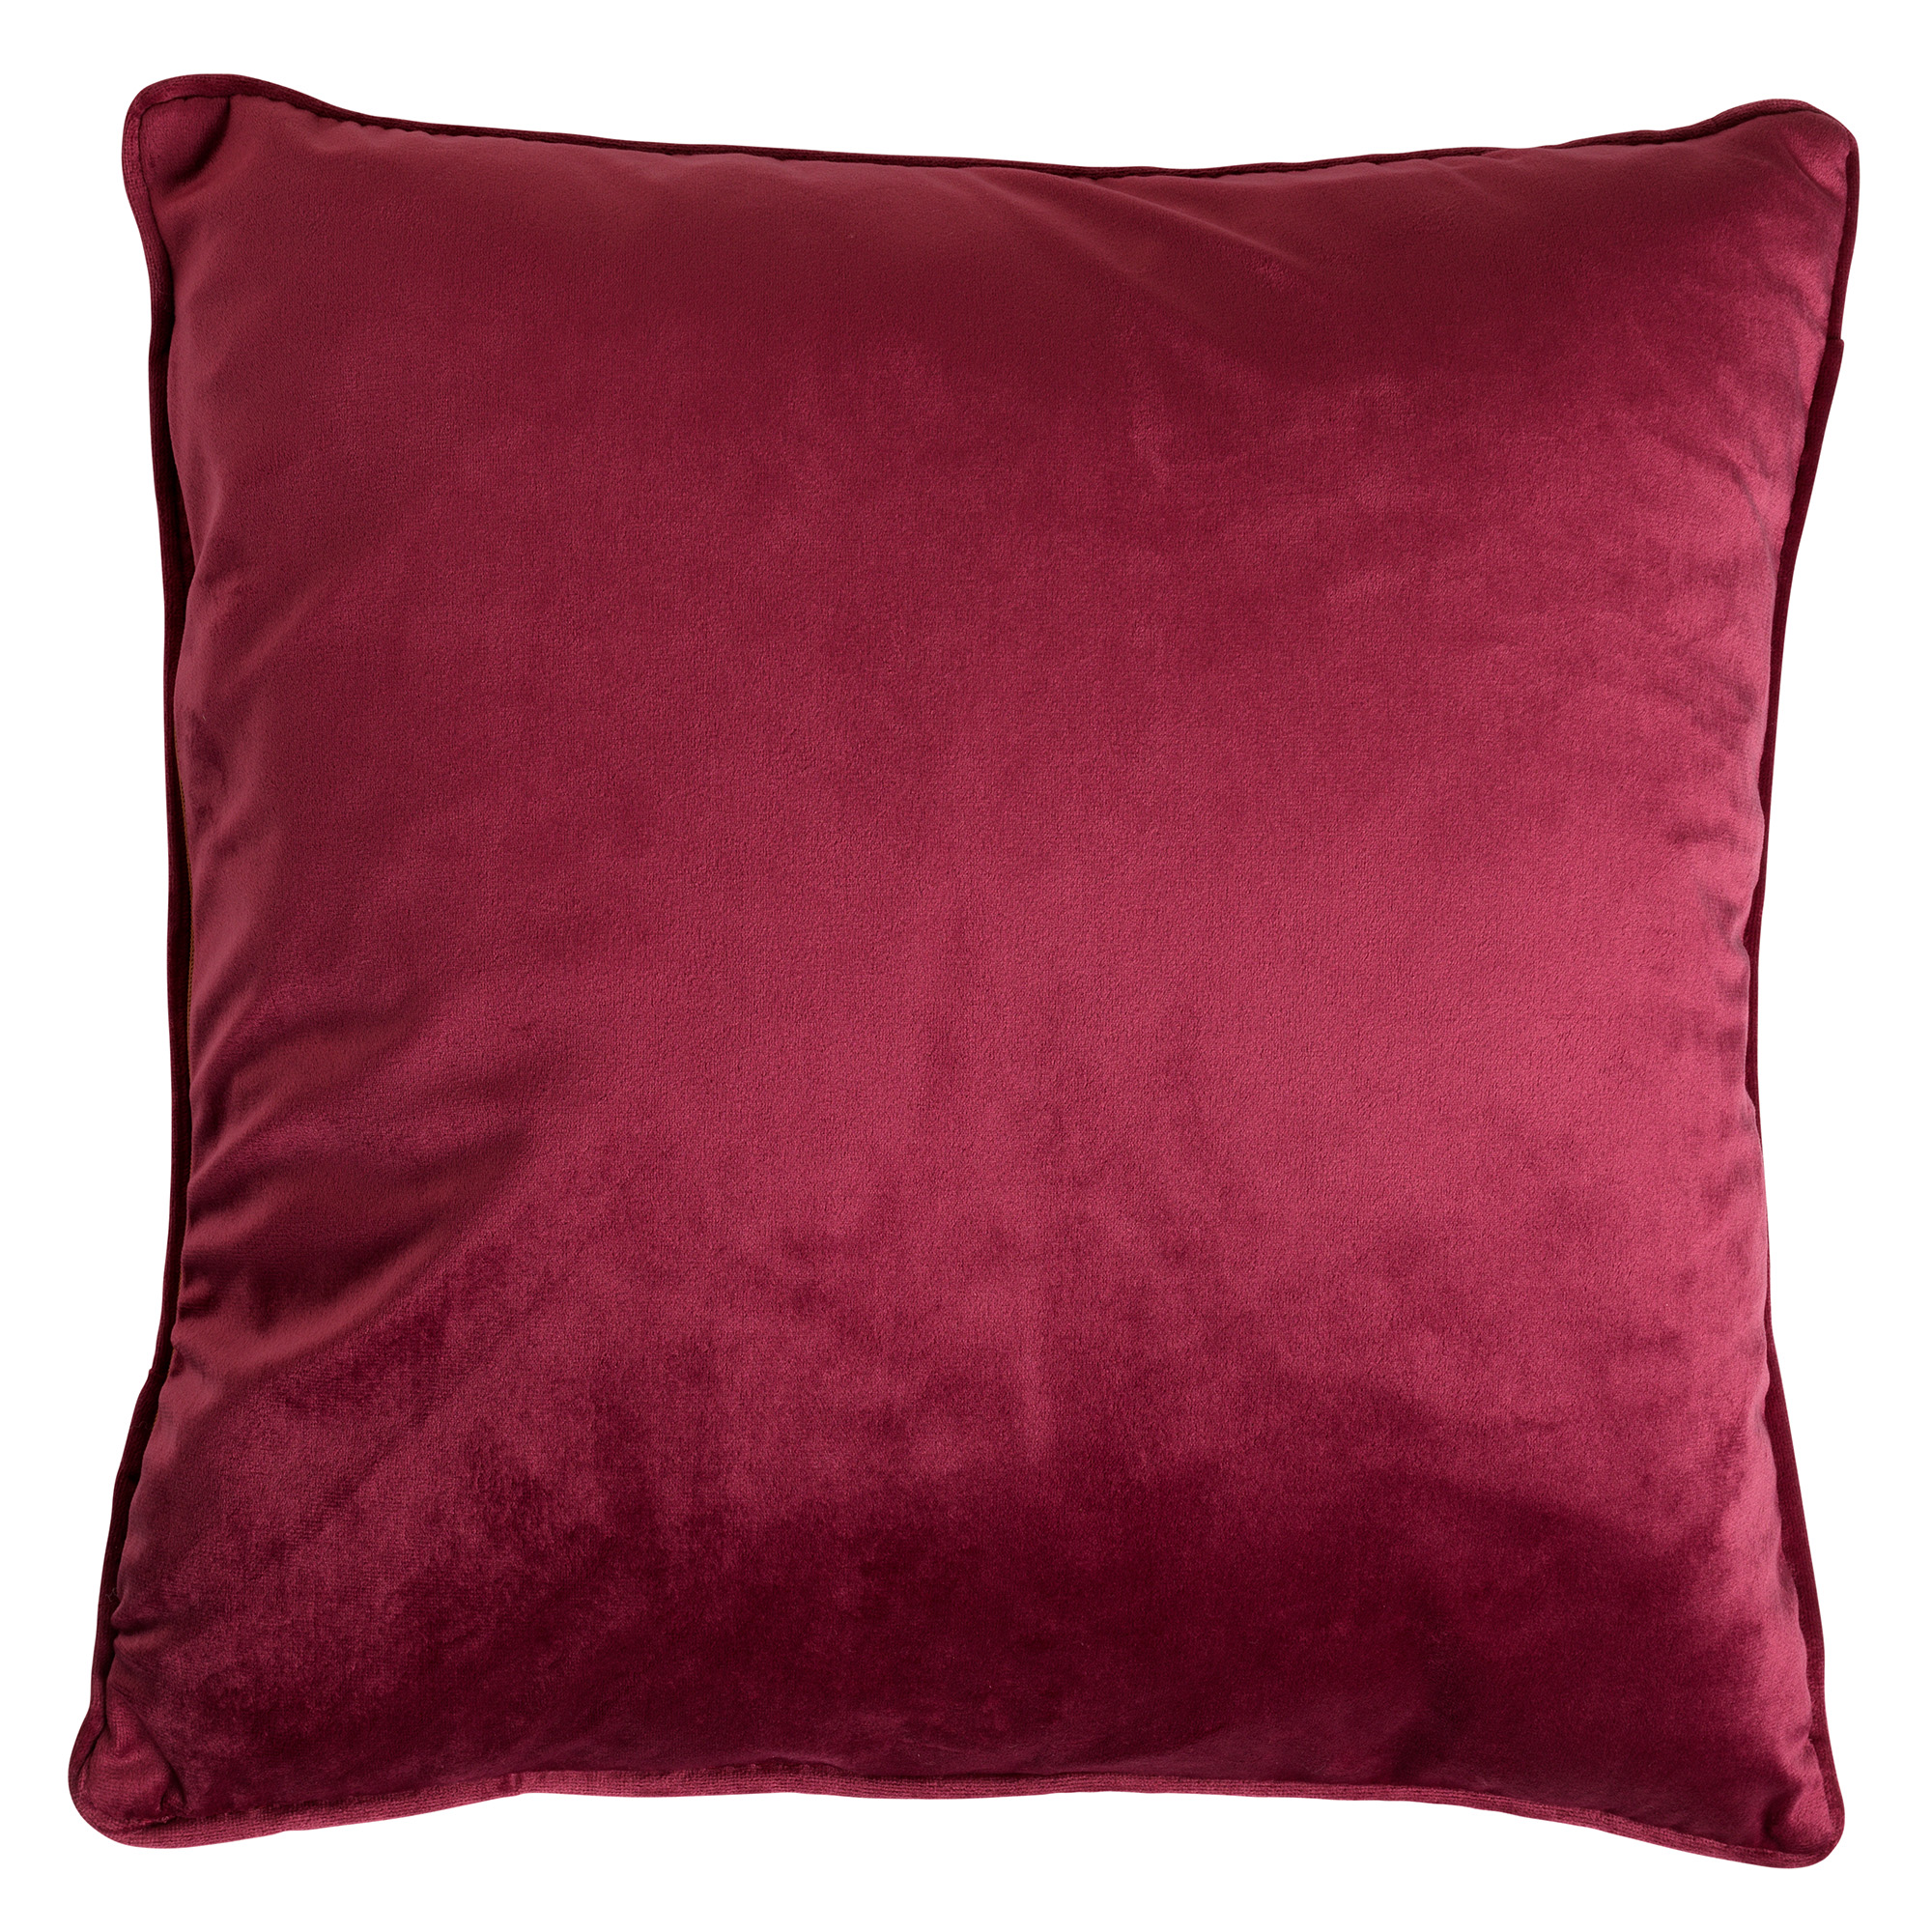 FINN - Kussenhoes velvet Red Plum 45x45 cm